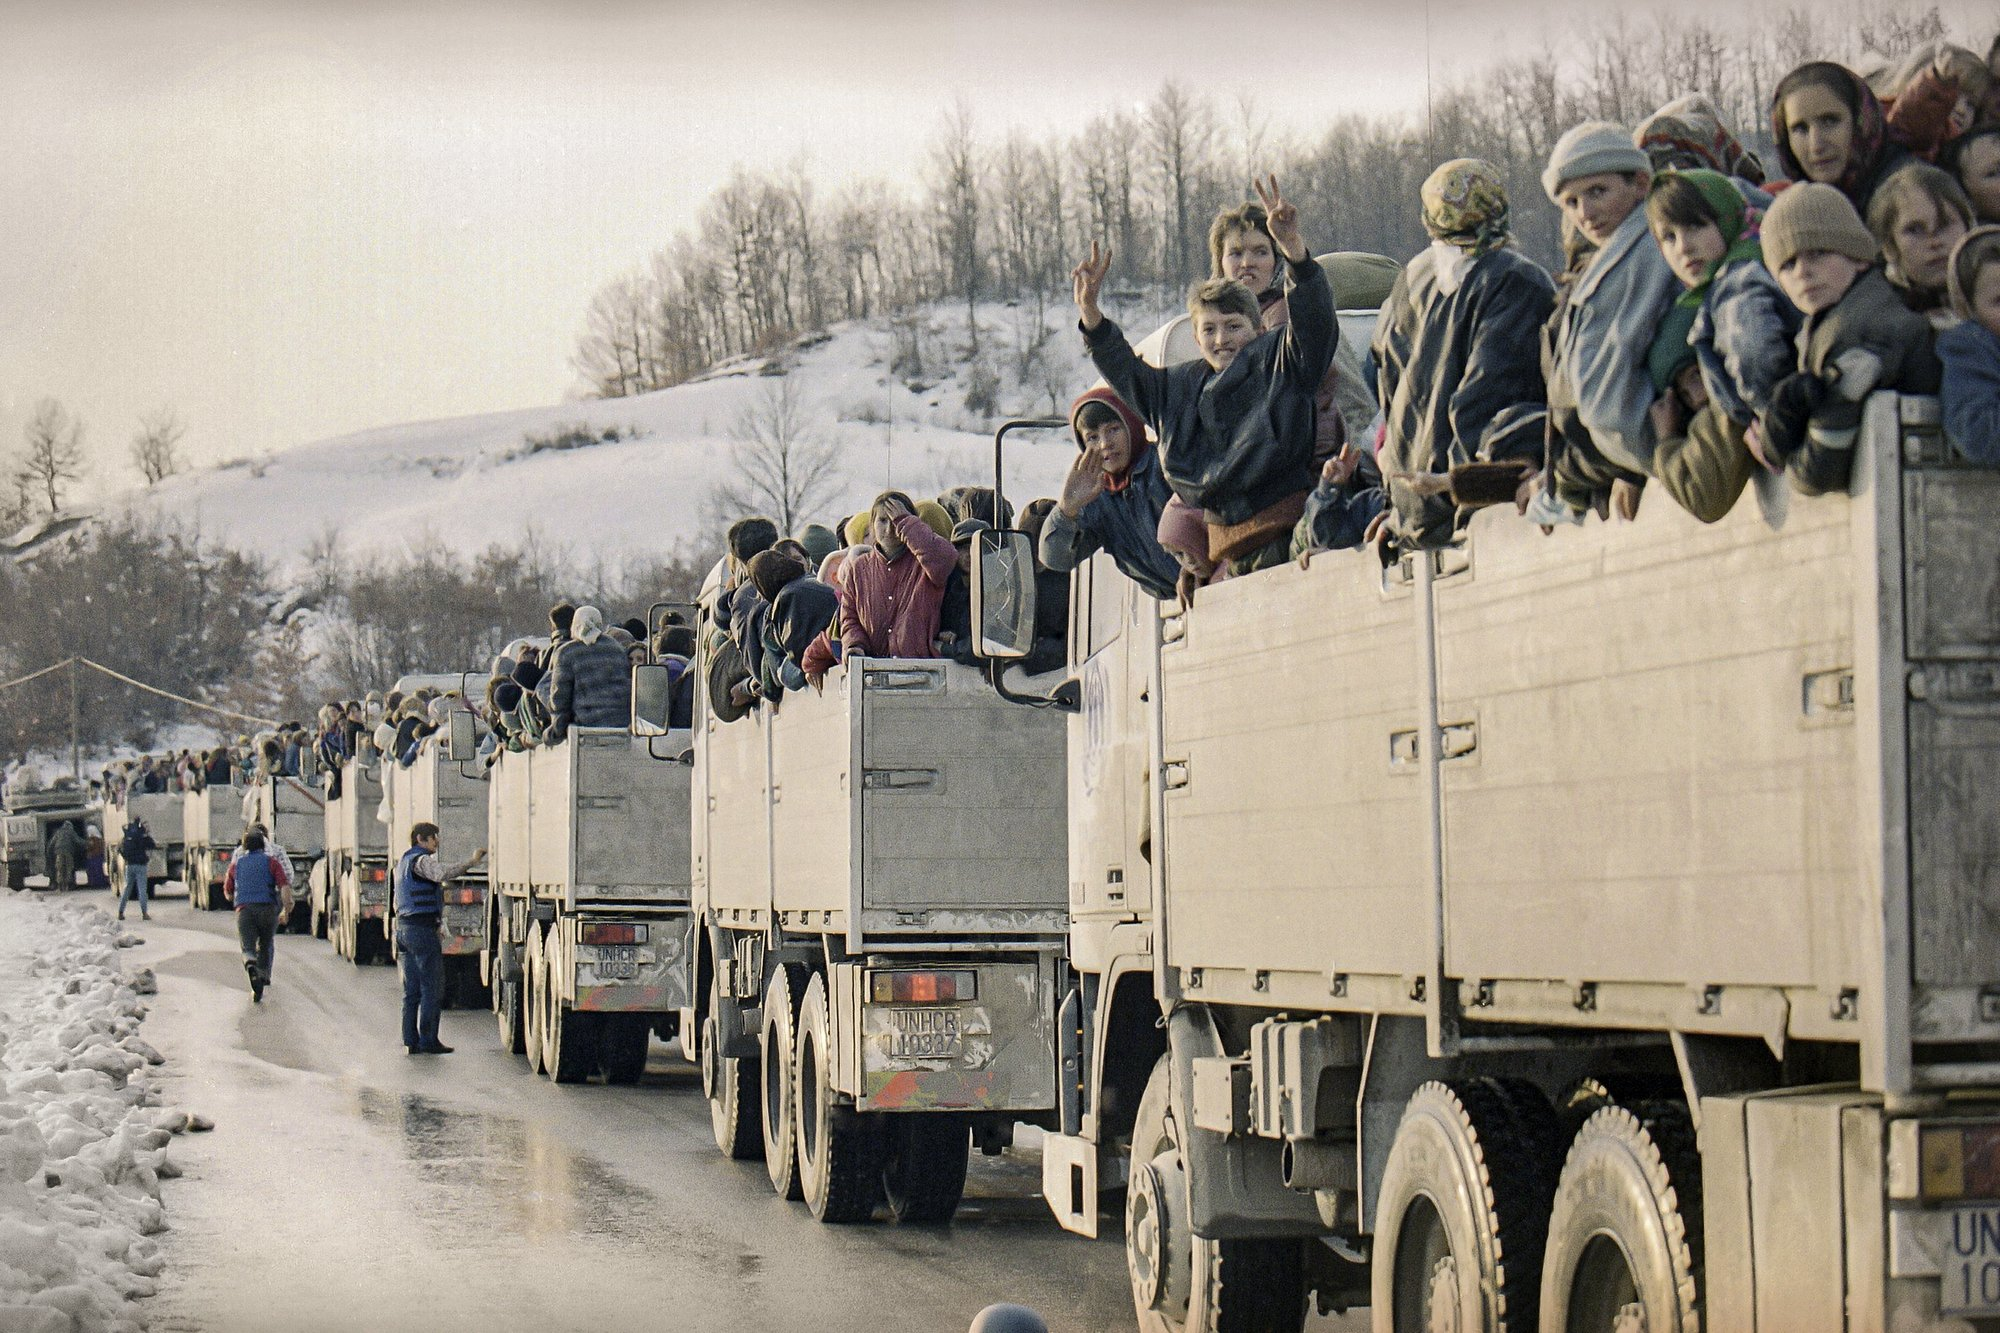 FILE- In this Monday, March 29, 1993 file picture, more than 2,000 evacuees from the besieged Muslim enclave of Srebrenica, packed on U.N. trucks en route to Tuzla, halt in Tojsici. The evacuation was possible due to a rare ceasefire in the area.  Survivors of the genocide in the eastern Bosnian town of Srebrenica, mainly women, will on Saturday July 11, 2020, commemorate the 25th anniversary of the slaughter of their fathers and brothers, husbands and sons.  At least 8,000 mostly Muslim men and boys were chased through woods in and around Srebrenica by Serb troops in what is considered the worst carnage of civilians in Europe since World War II. The slaughter was also the only atrocity of the brutal war that has been confirmed an act of genocide. (AP Photo/Michel Euler, File)